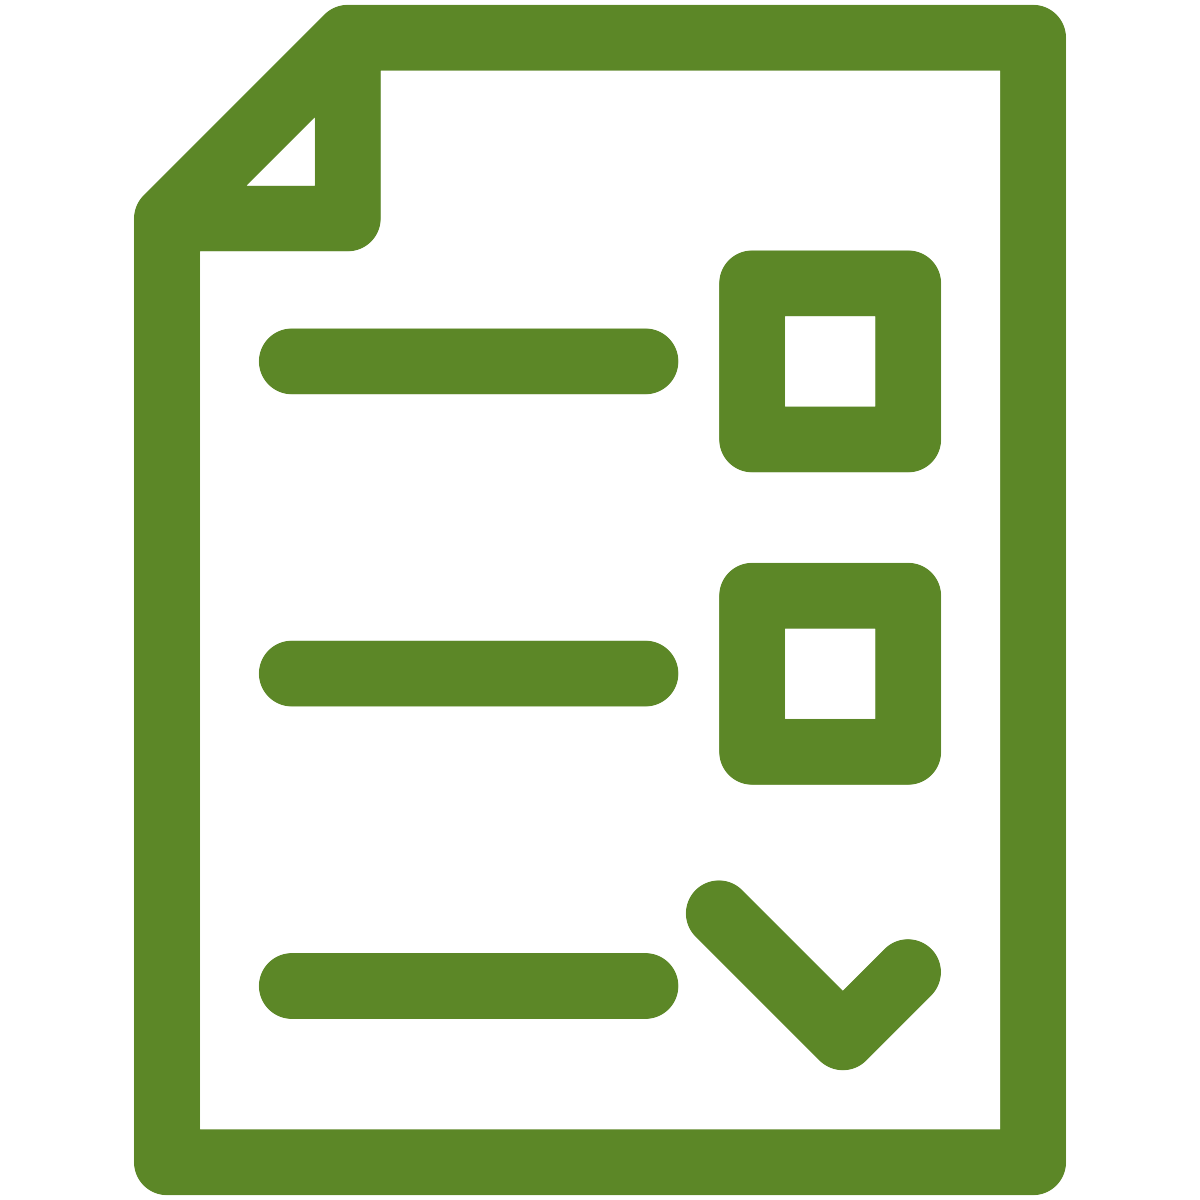 checklist icon in green